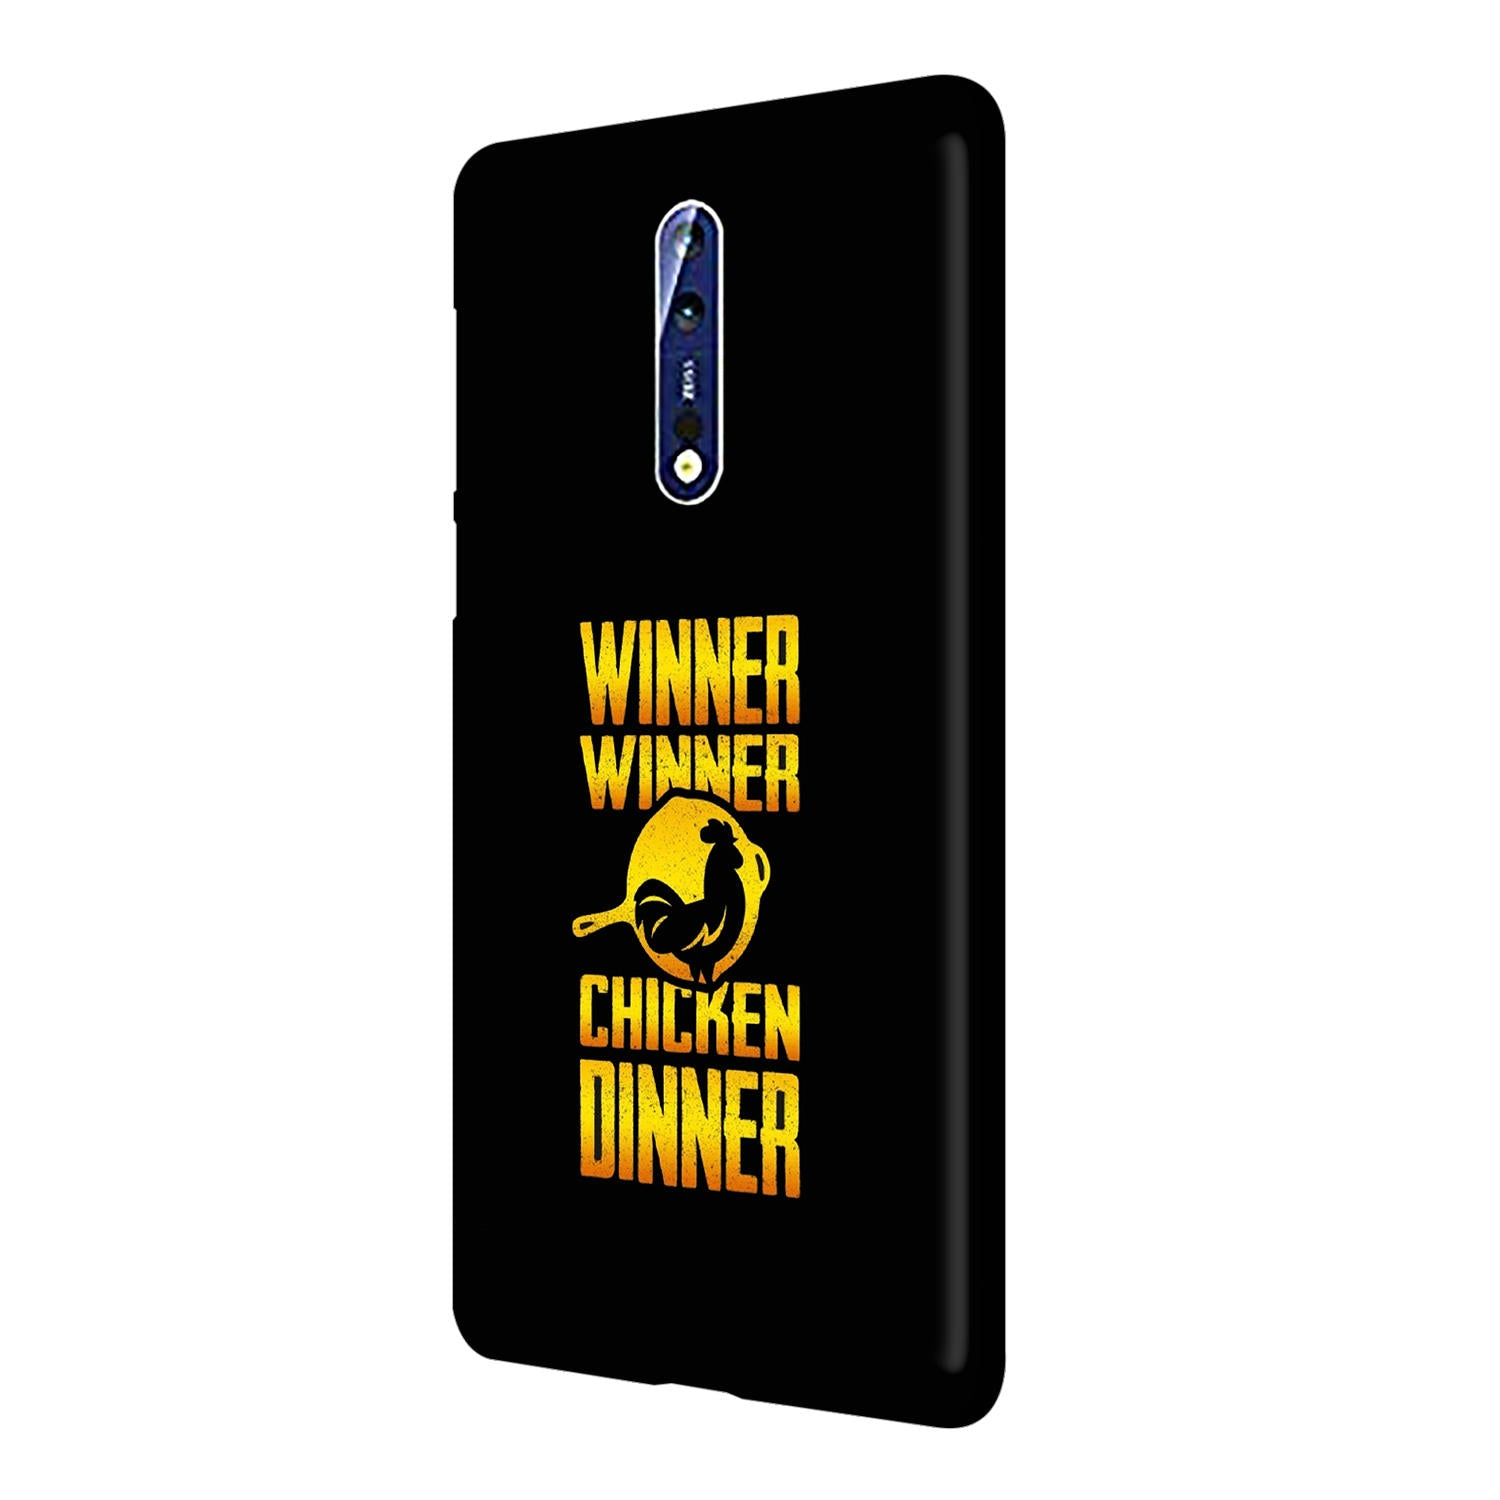 Chicken Dinner Pan For Winner Typography Nokia 8 Mobile Cover Case